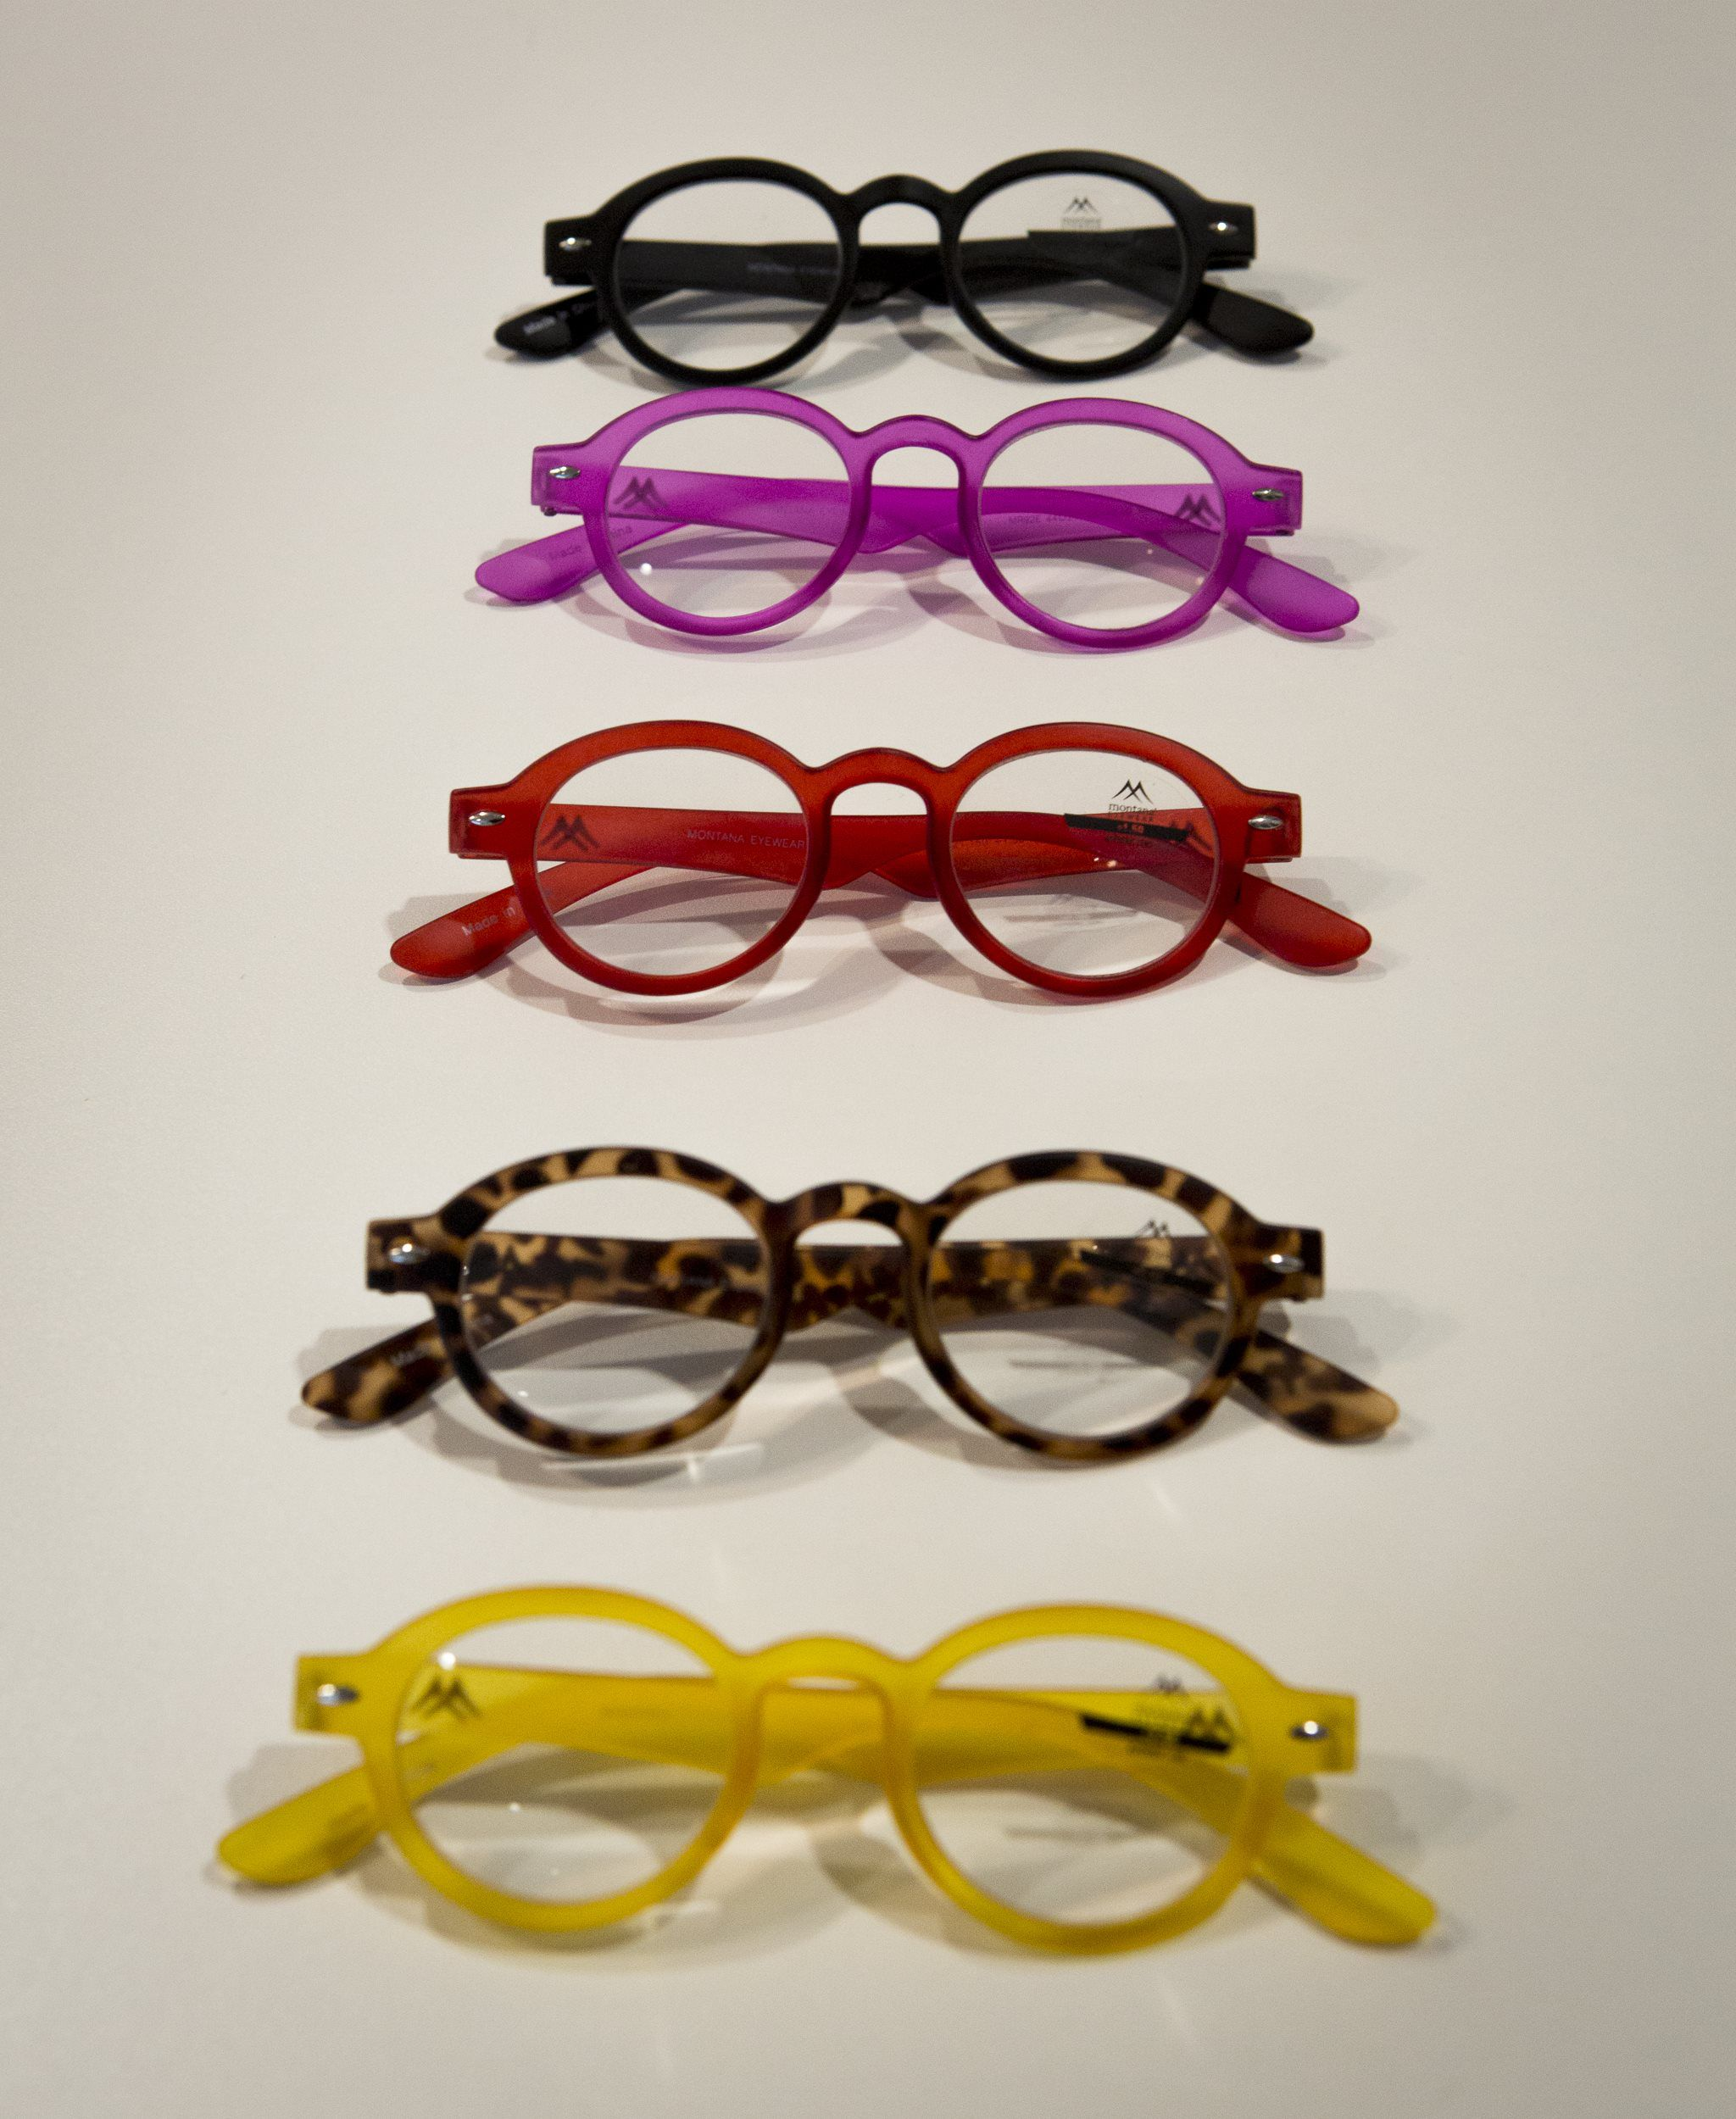 7a421d1fb847 Readers And Accessories Eyewear - Bullock s the Eye Opener